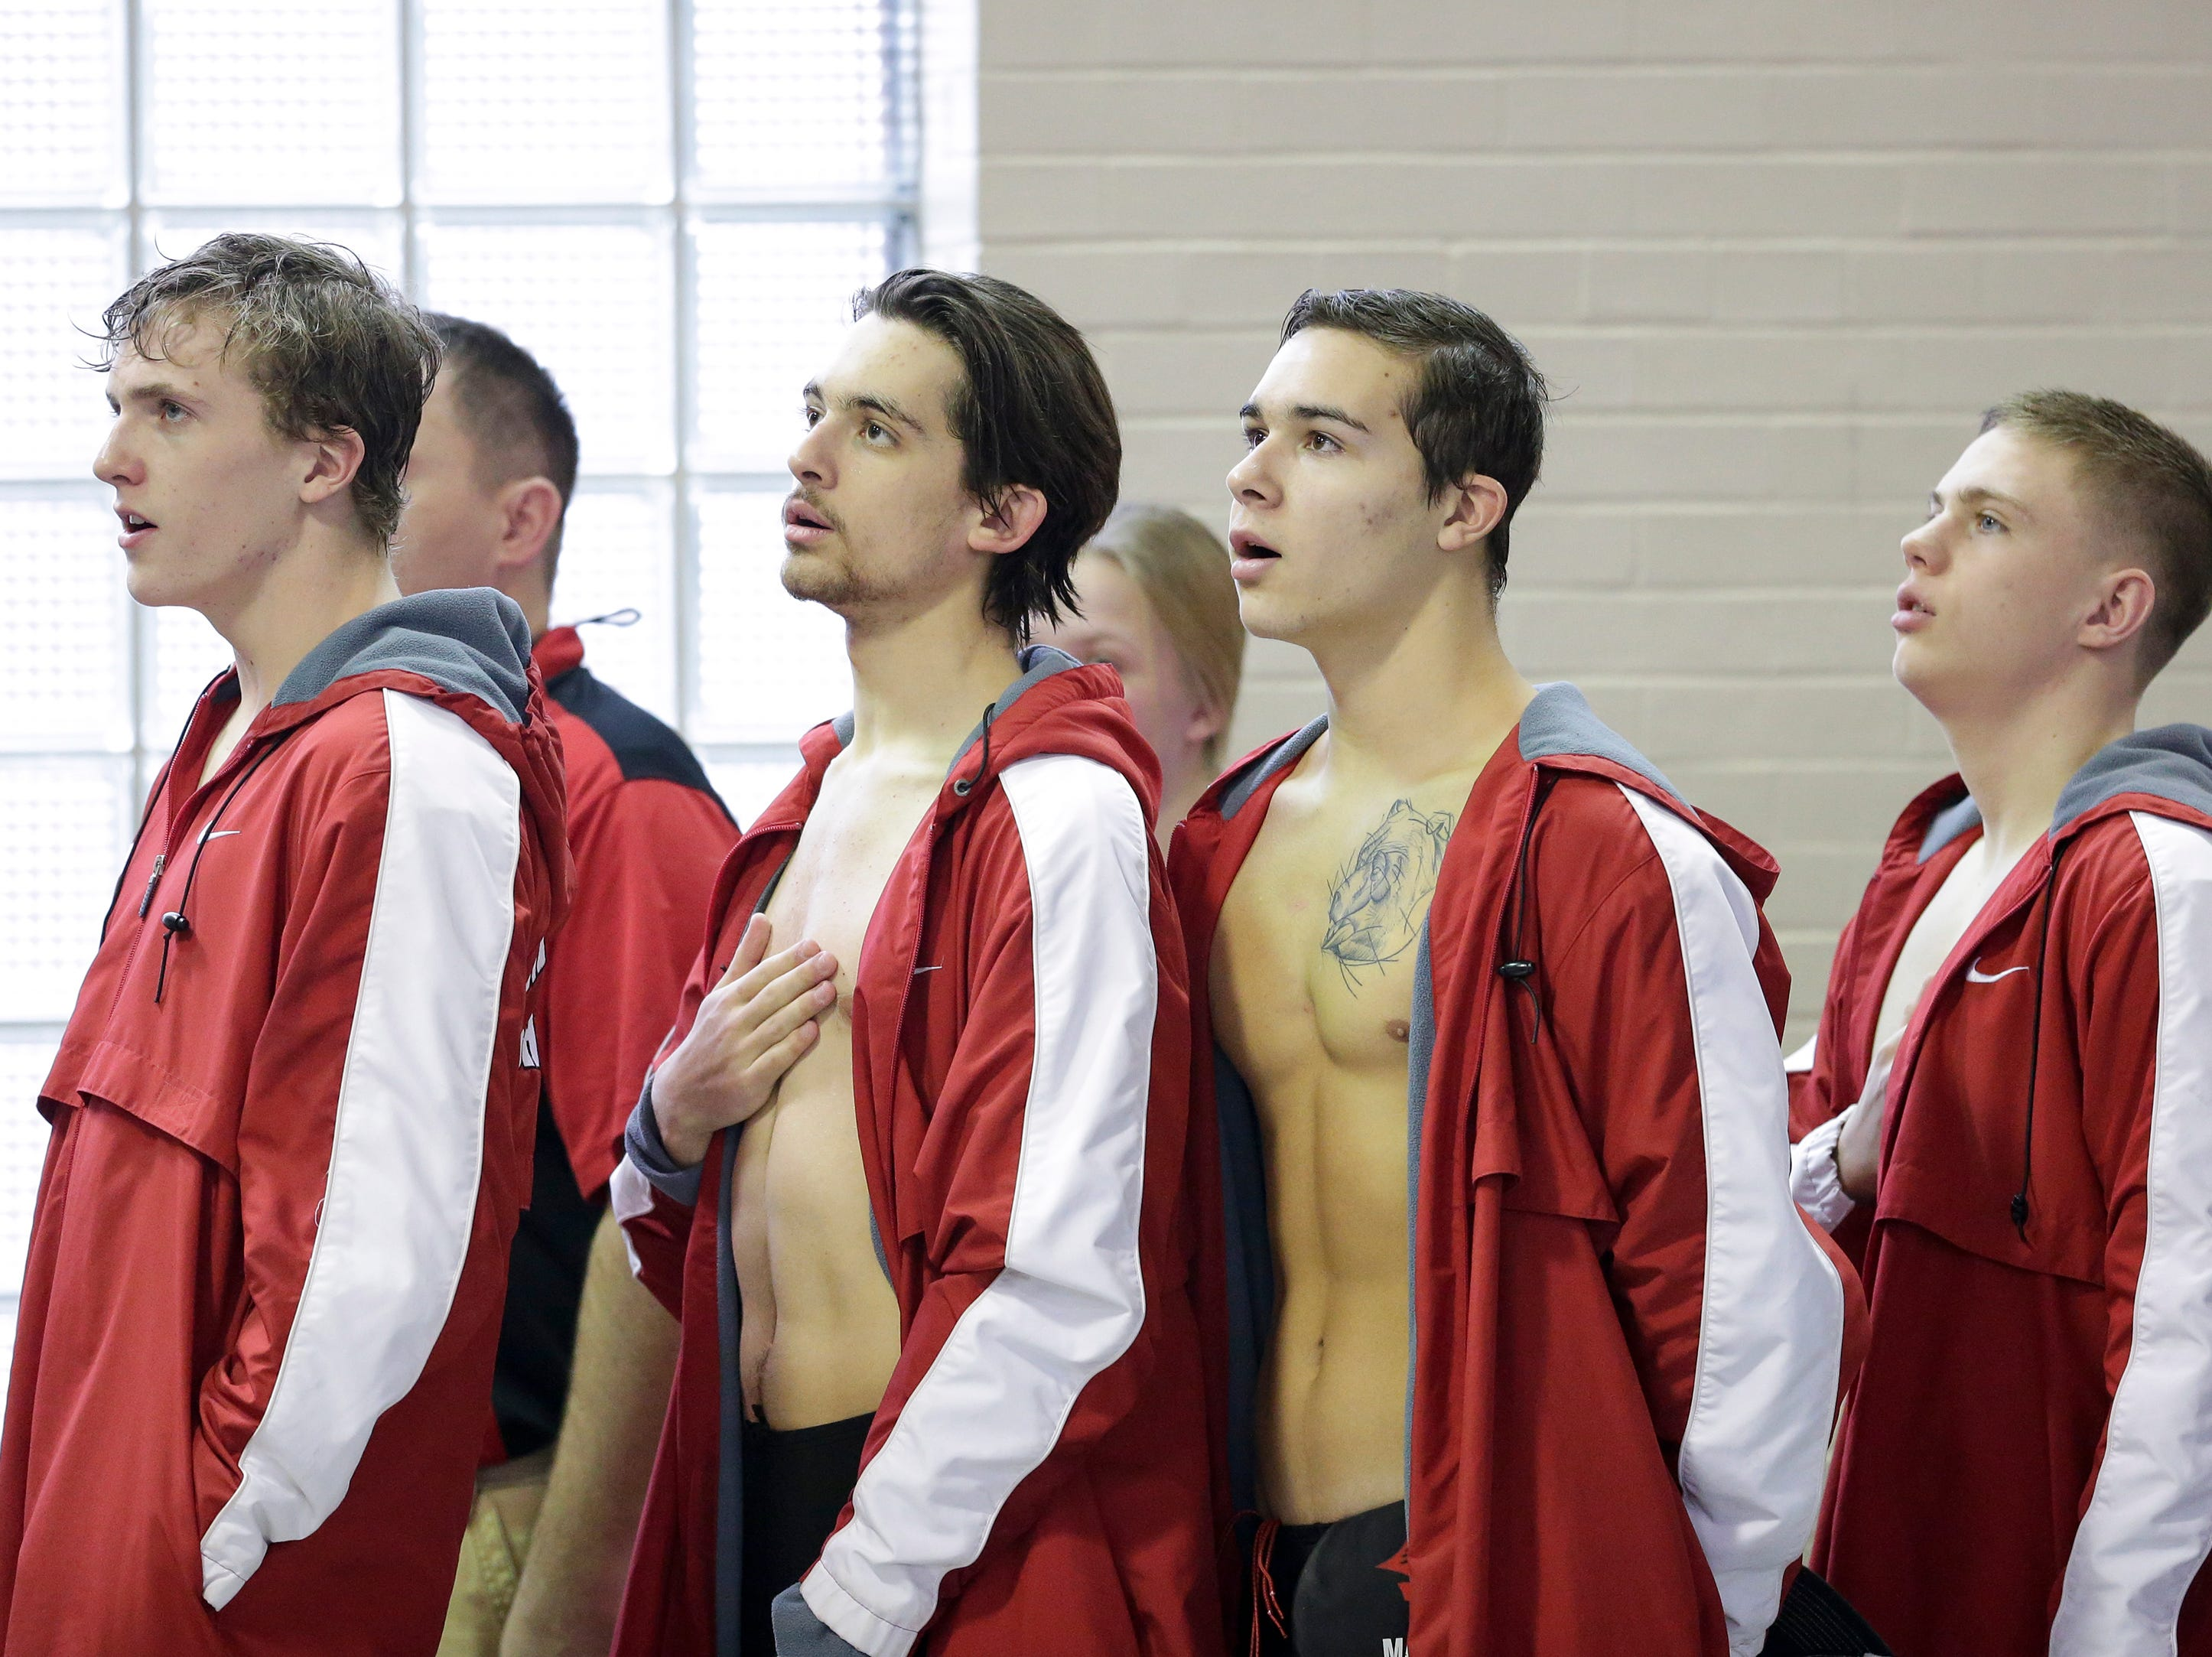 Manitowoc Lincoln's boys swim team sings the National anthem before the Lincoln Boys Swim Invitational at Manitowoc Lincoln High School Saturday, January 12, 2019, in Manitowoc, Wis. Joshua Clark/USA TODAY NETWORK-Wisconsin